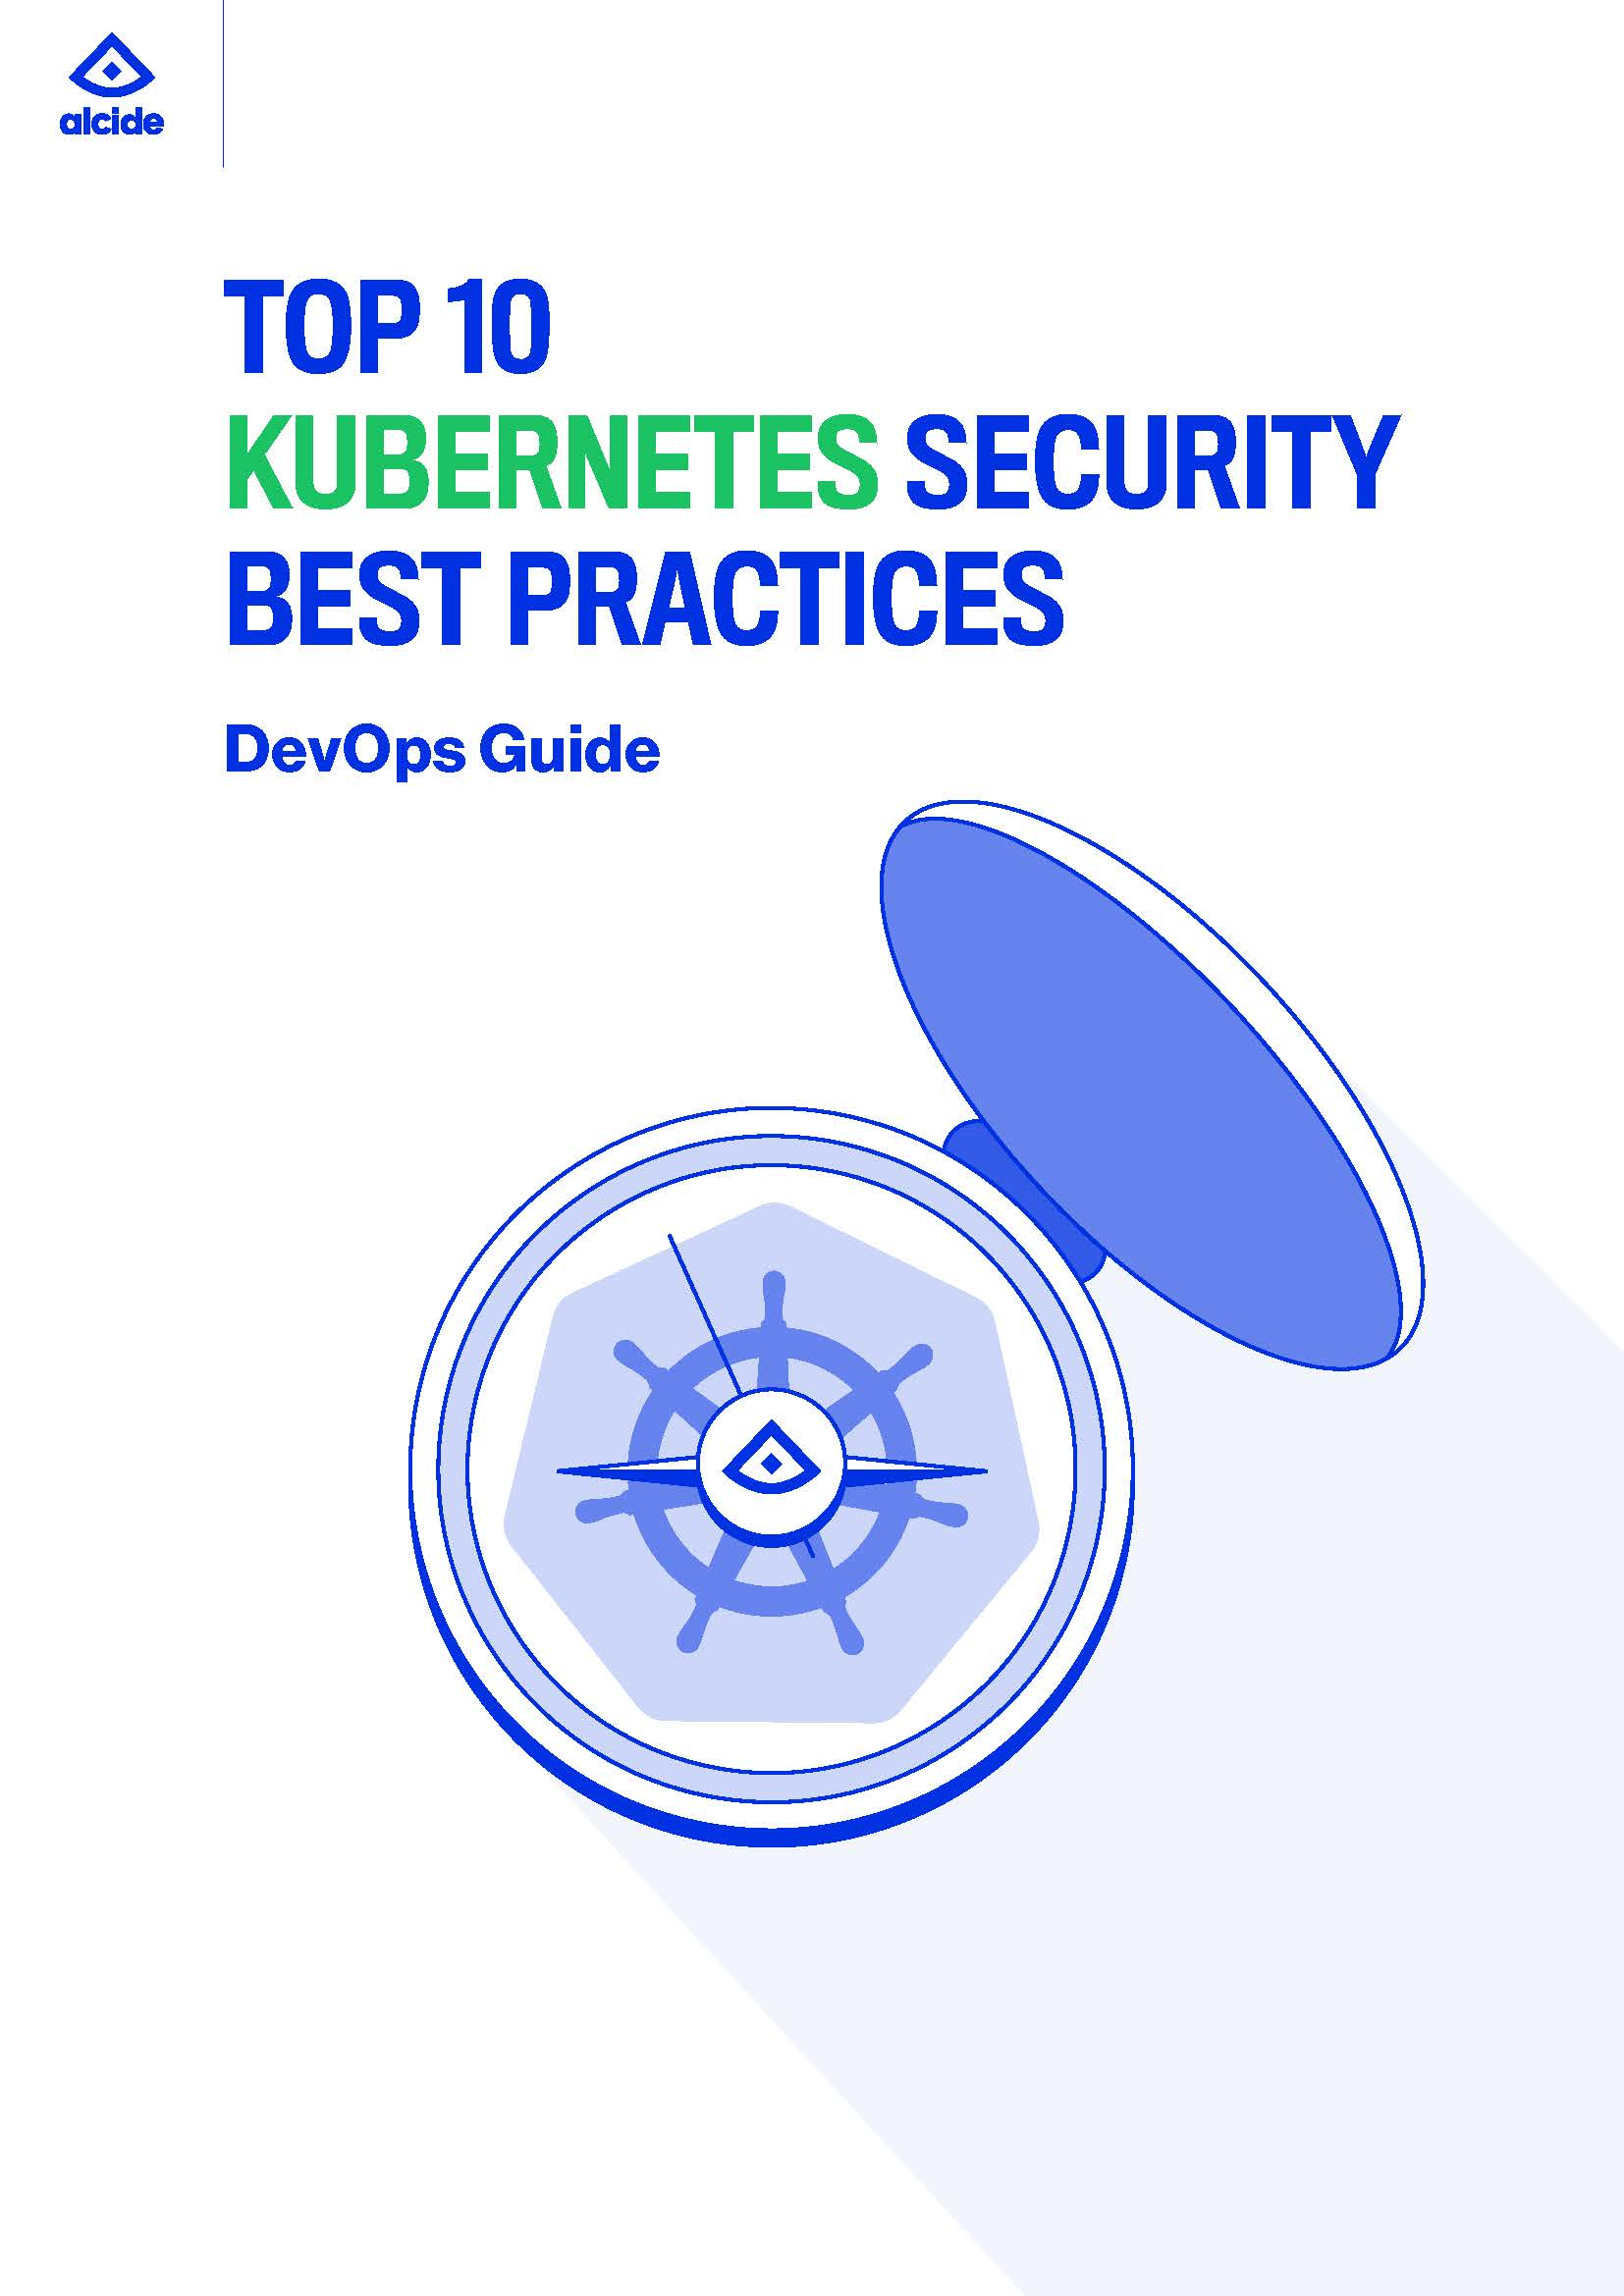 Top 10 Kubernetes Best Practices Final_Page_1-1